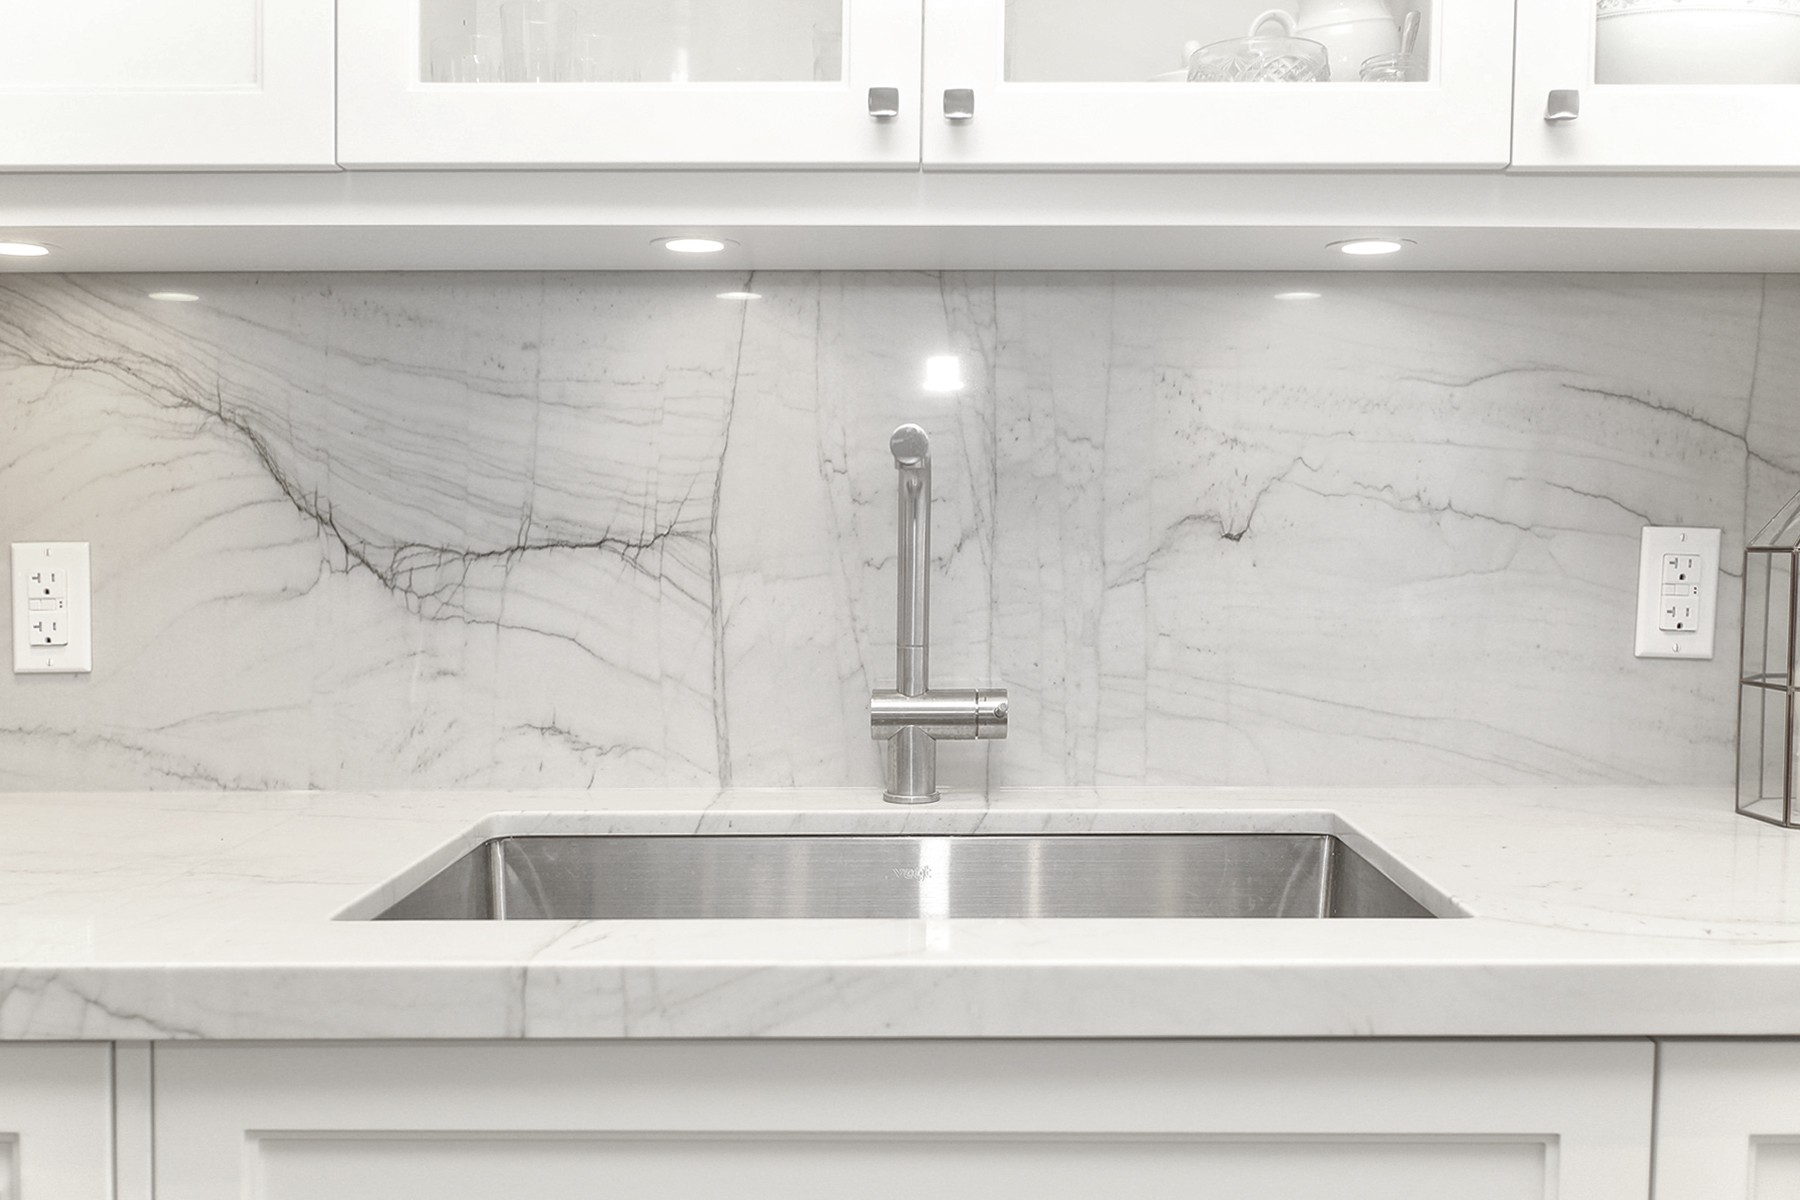 Backsplash & Countertop - Pinot Bianco